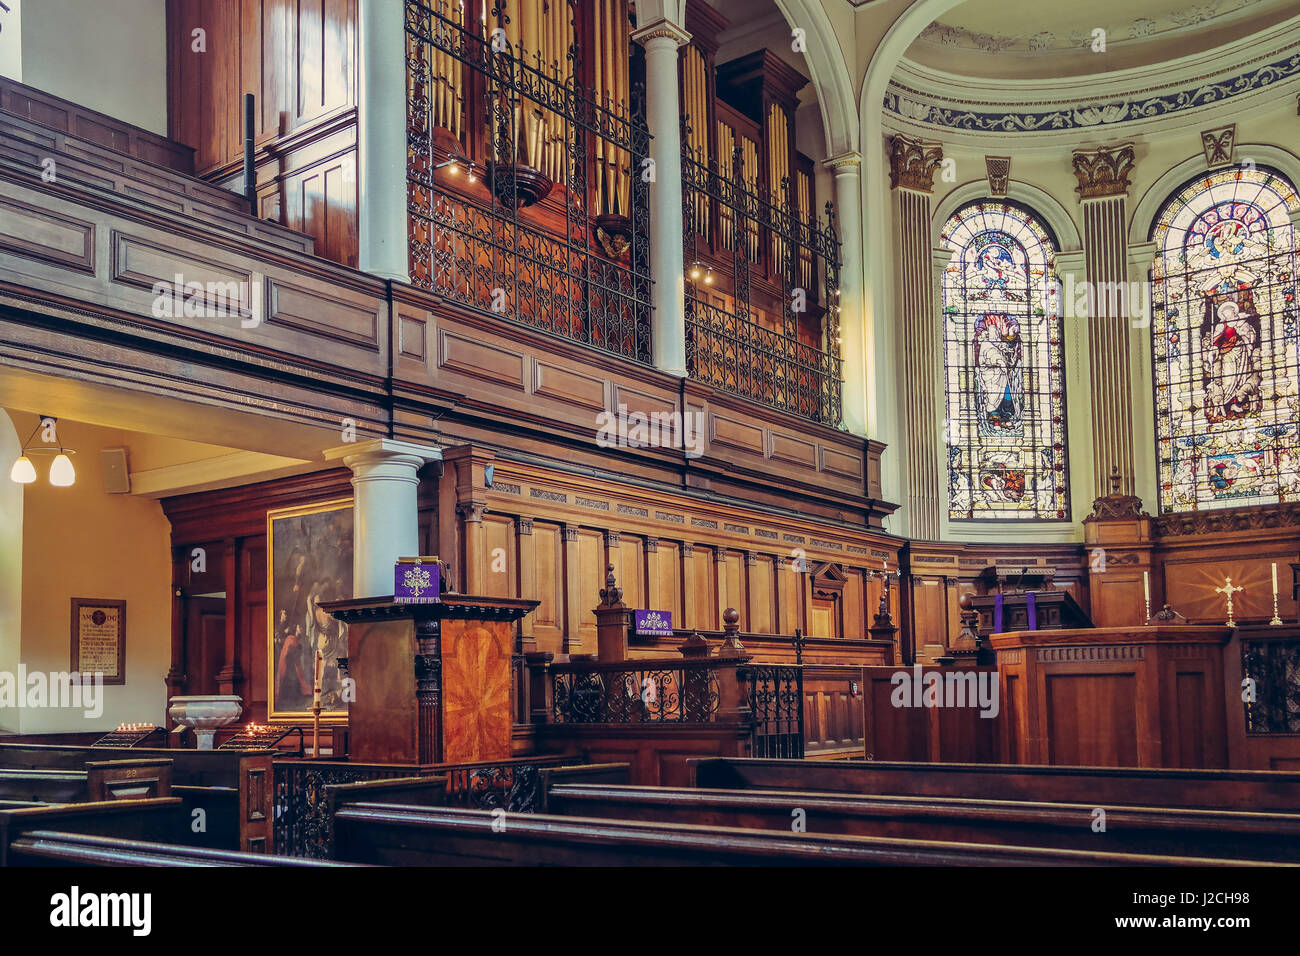 Saint Annes Church in Manchester, UK. Side view of benches, organ and beautiful mosaic windows Stock Photo